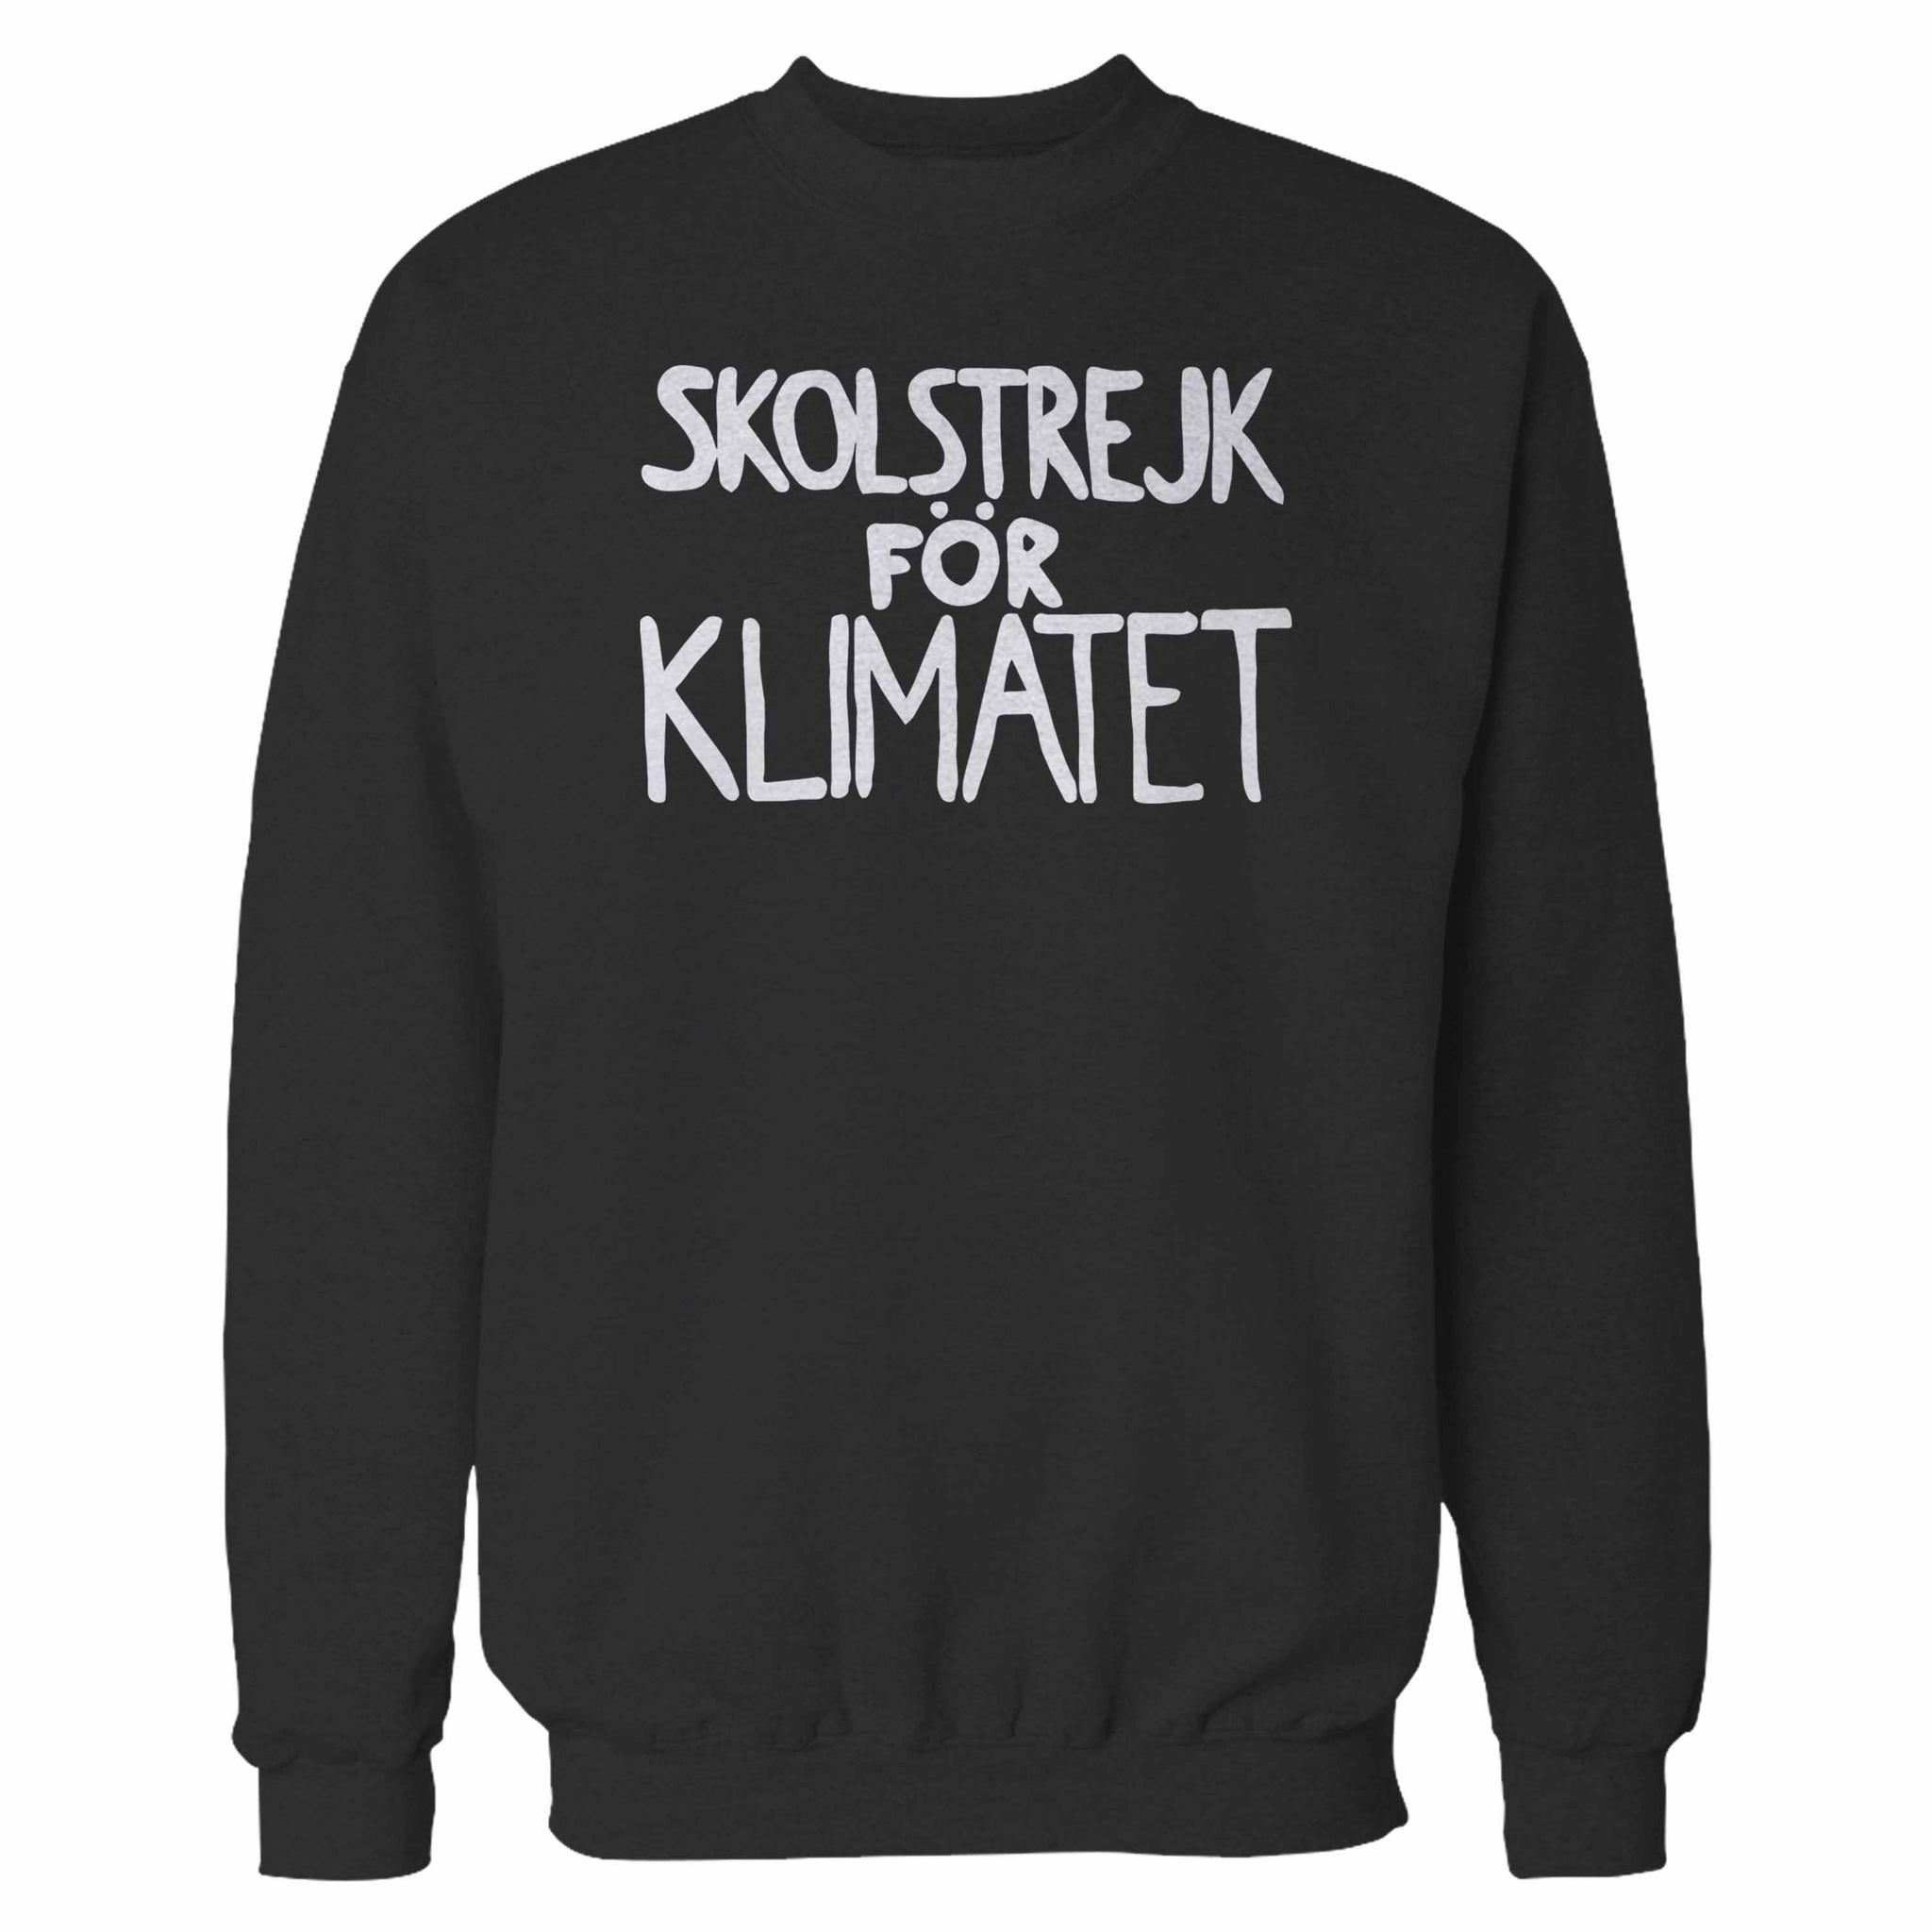 Skolstrejk For Klimatet Sweatshirt